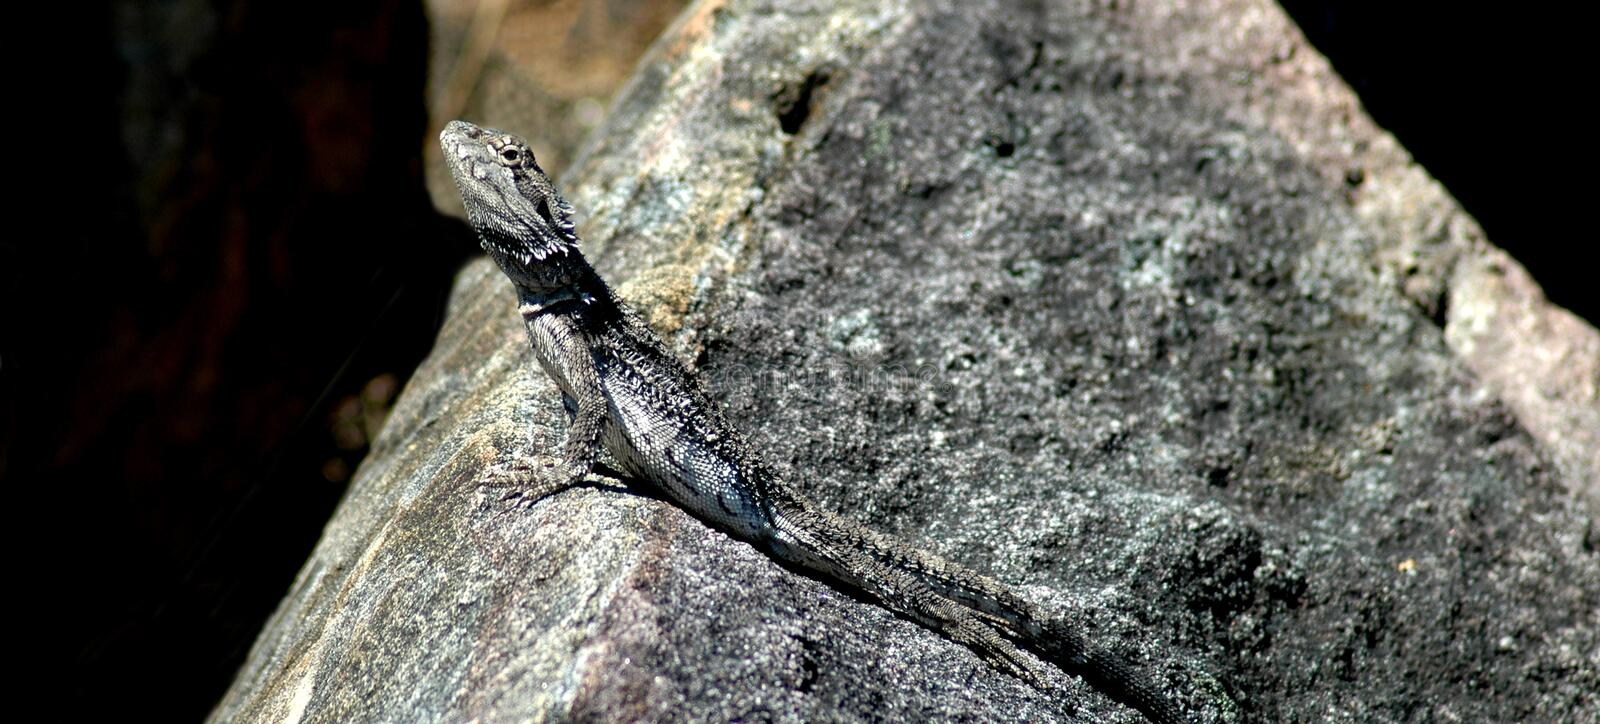 Download Lizard on rock stock photo. Image of details, camouflage - 5989016